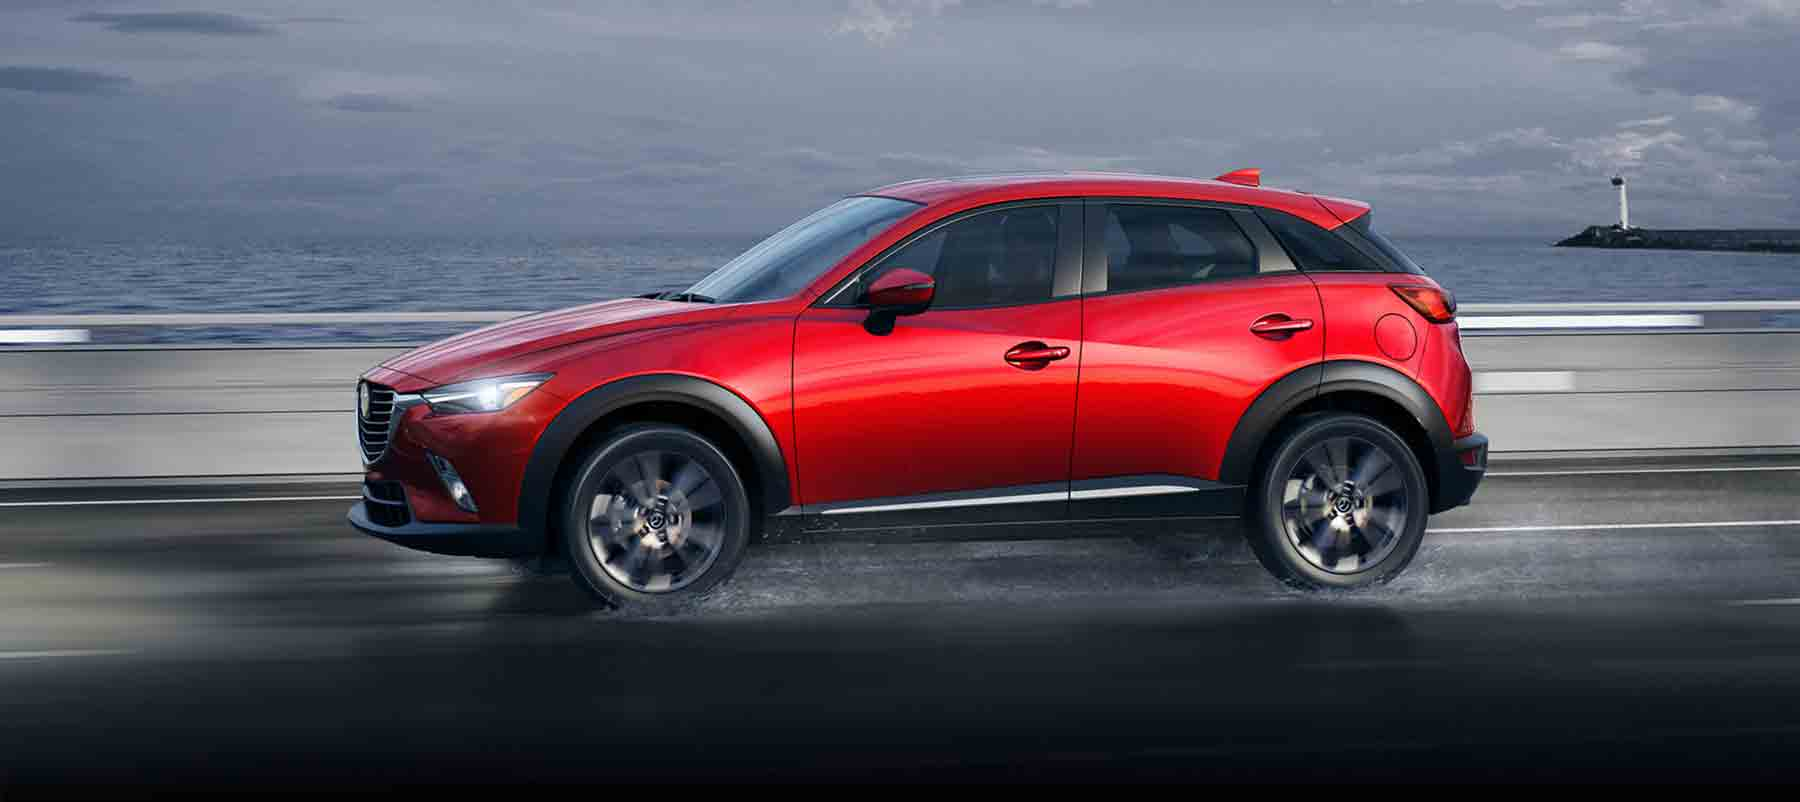 2018 CX 3, MAY LEAD TO SPONTANEOUS EXCURSIONS